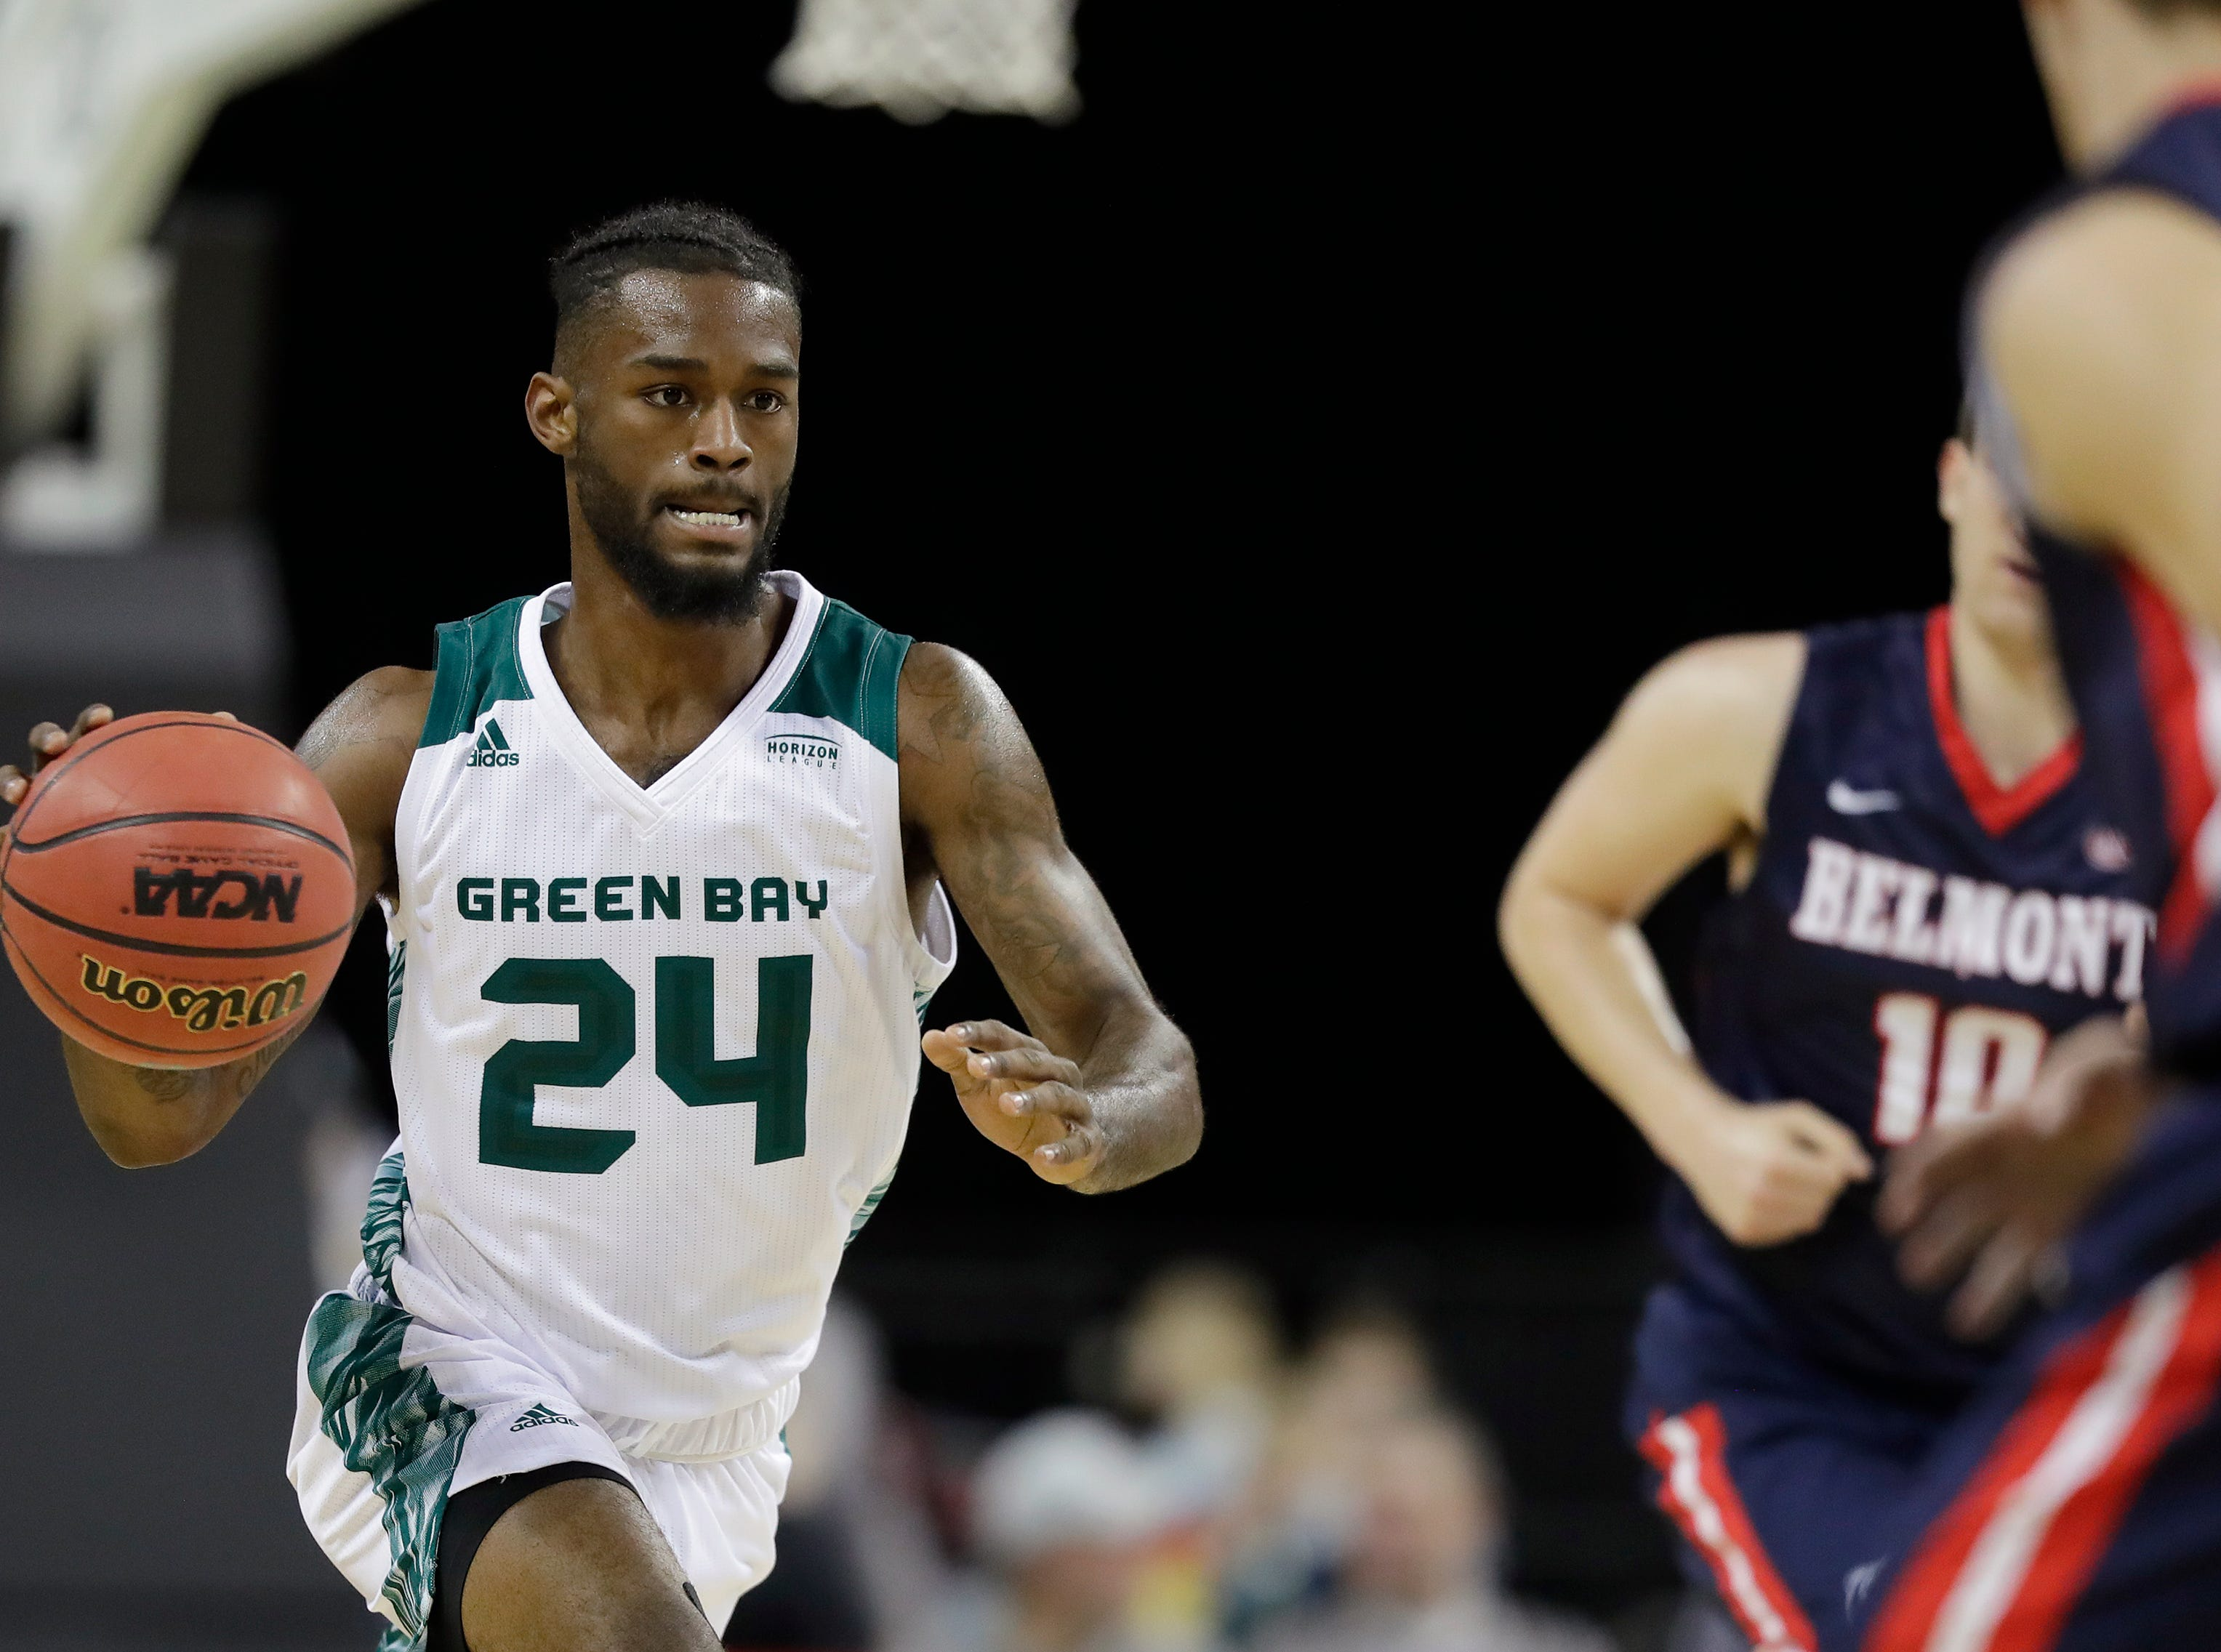 Green Bay Phoenix guard Jevon Smith (24) dribbles against the Belmont Bruins in a NCAA basketball game at the Resch Center on Saturday, December 1, 2018 in Ashwaubenon, Wis.